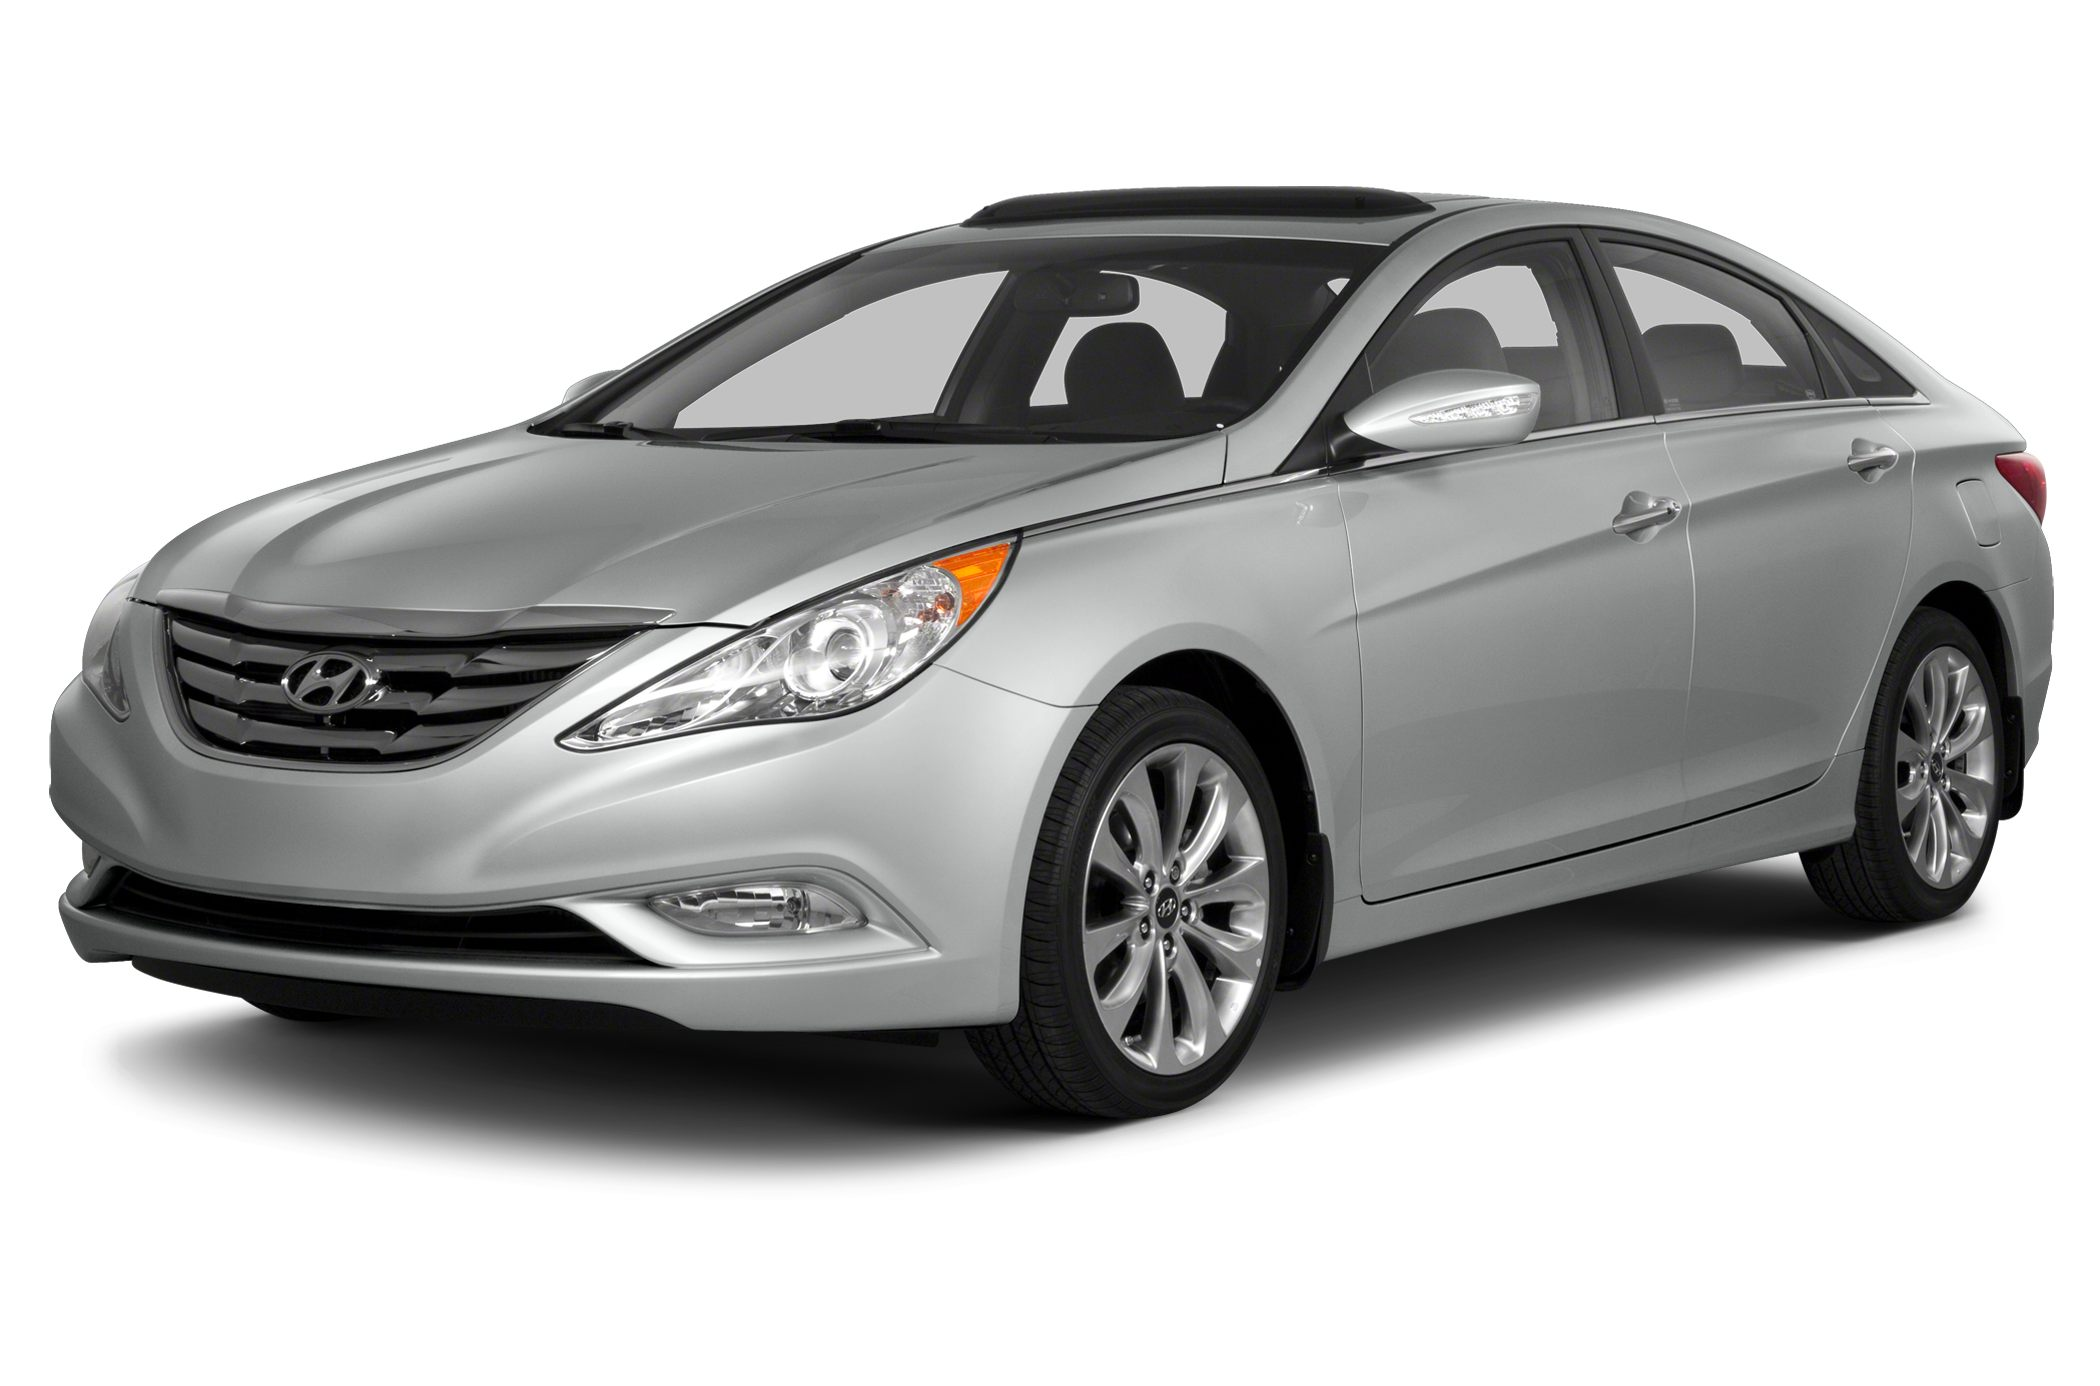 2013 Hyundai Sonata GLS Sedan for sale in Rock Hill for $13,398 with 57,390 miles